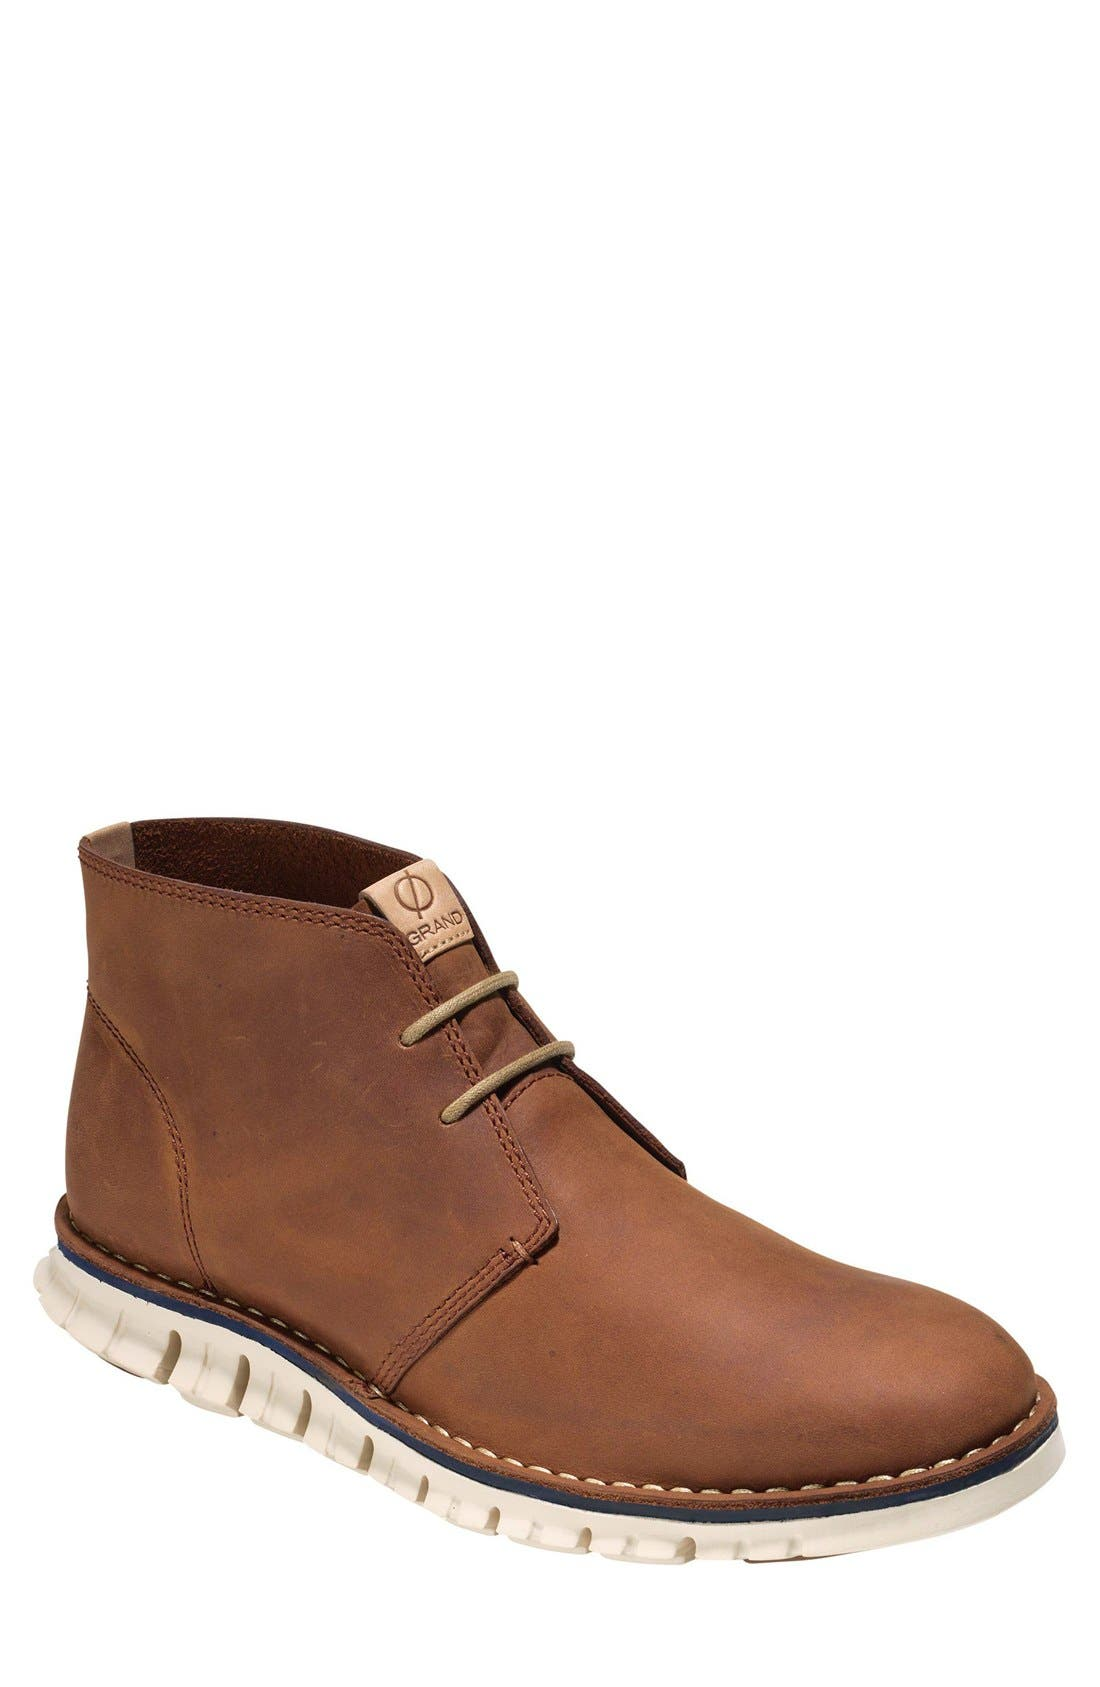 Alternate Image 1 Selected - Cole Haan 'ZeroGrand' Chukka Boot (Men)